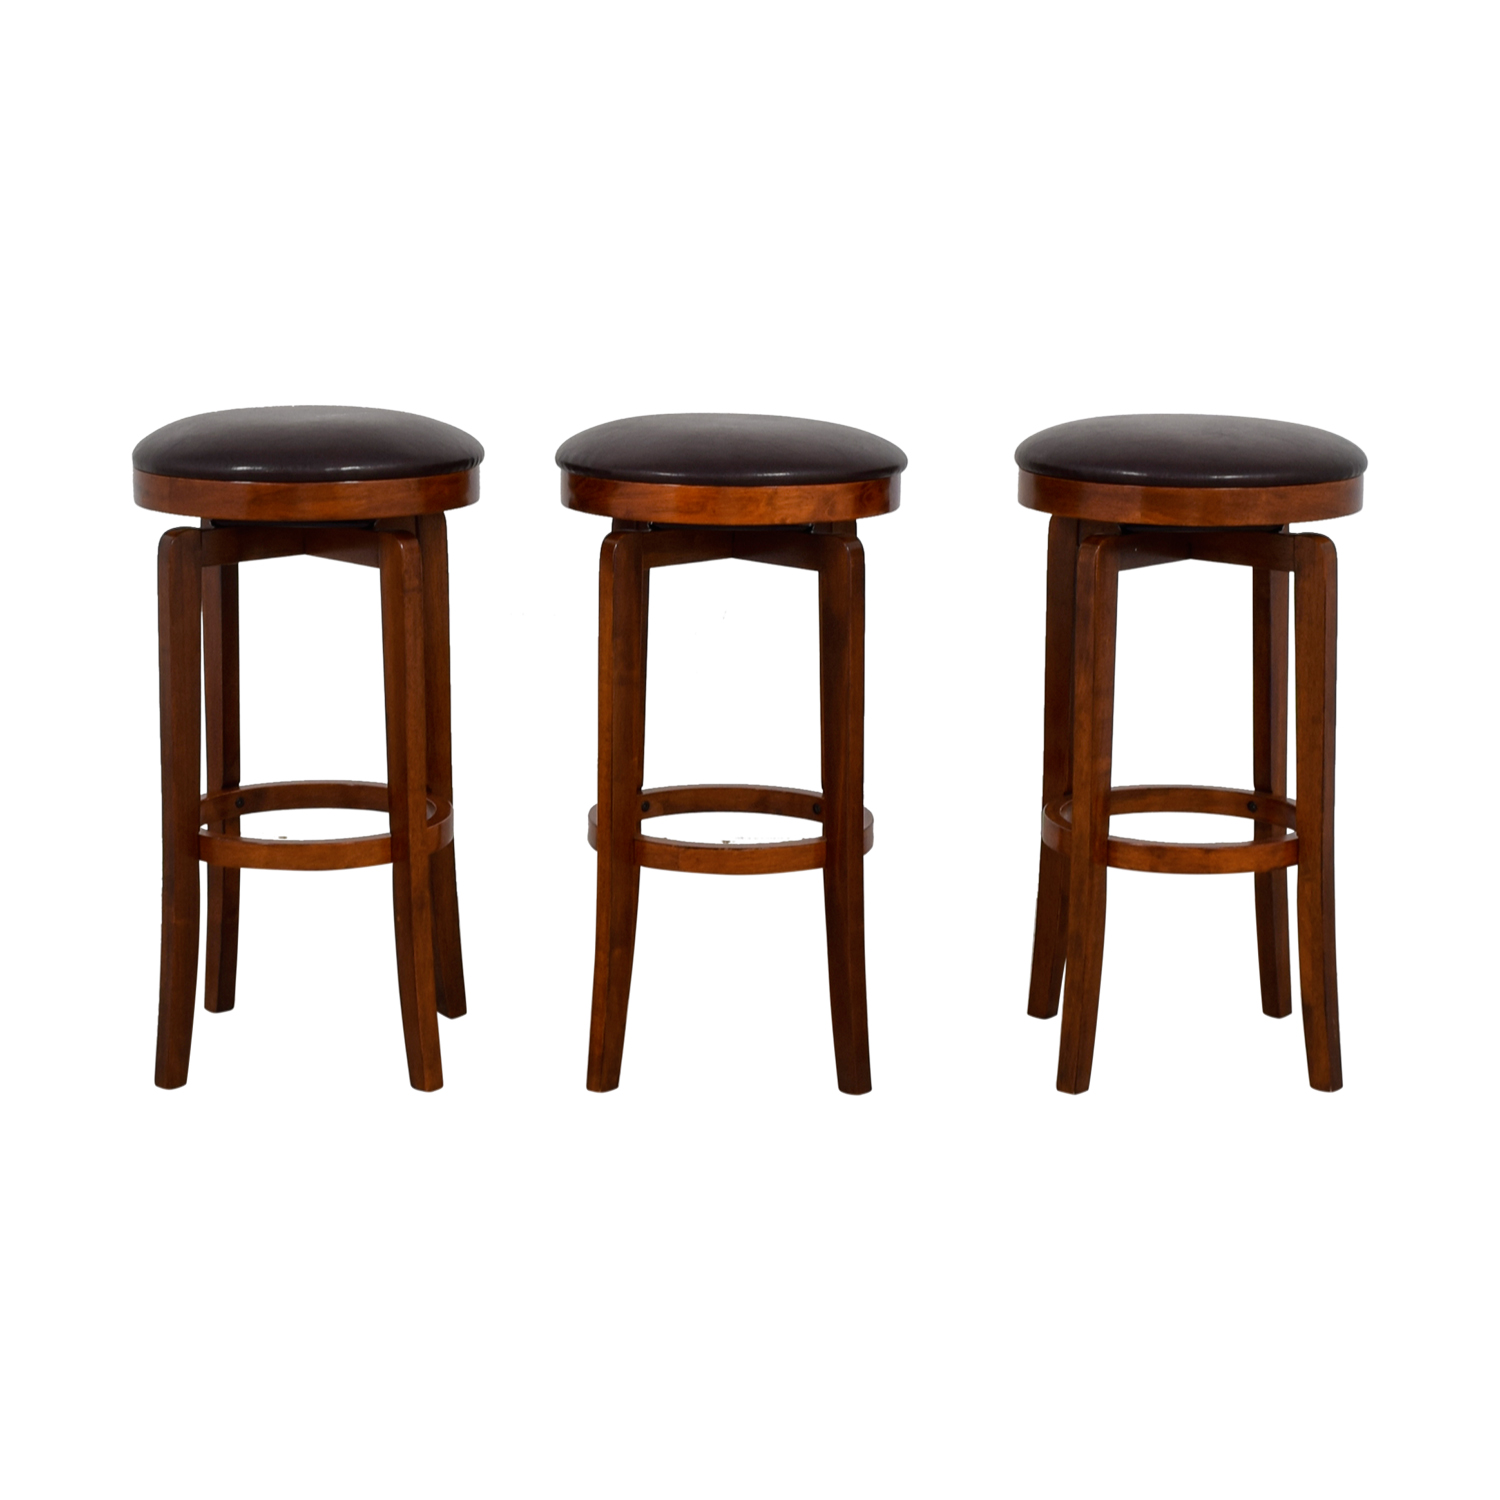 Bob's Furniture Bob's Furniture Brown Stools price